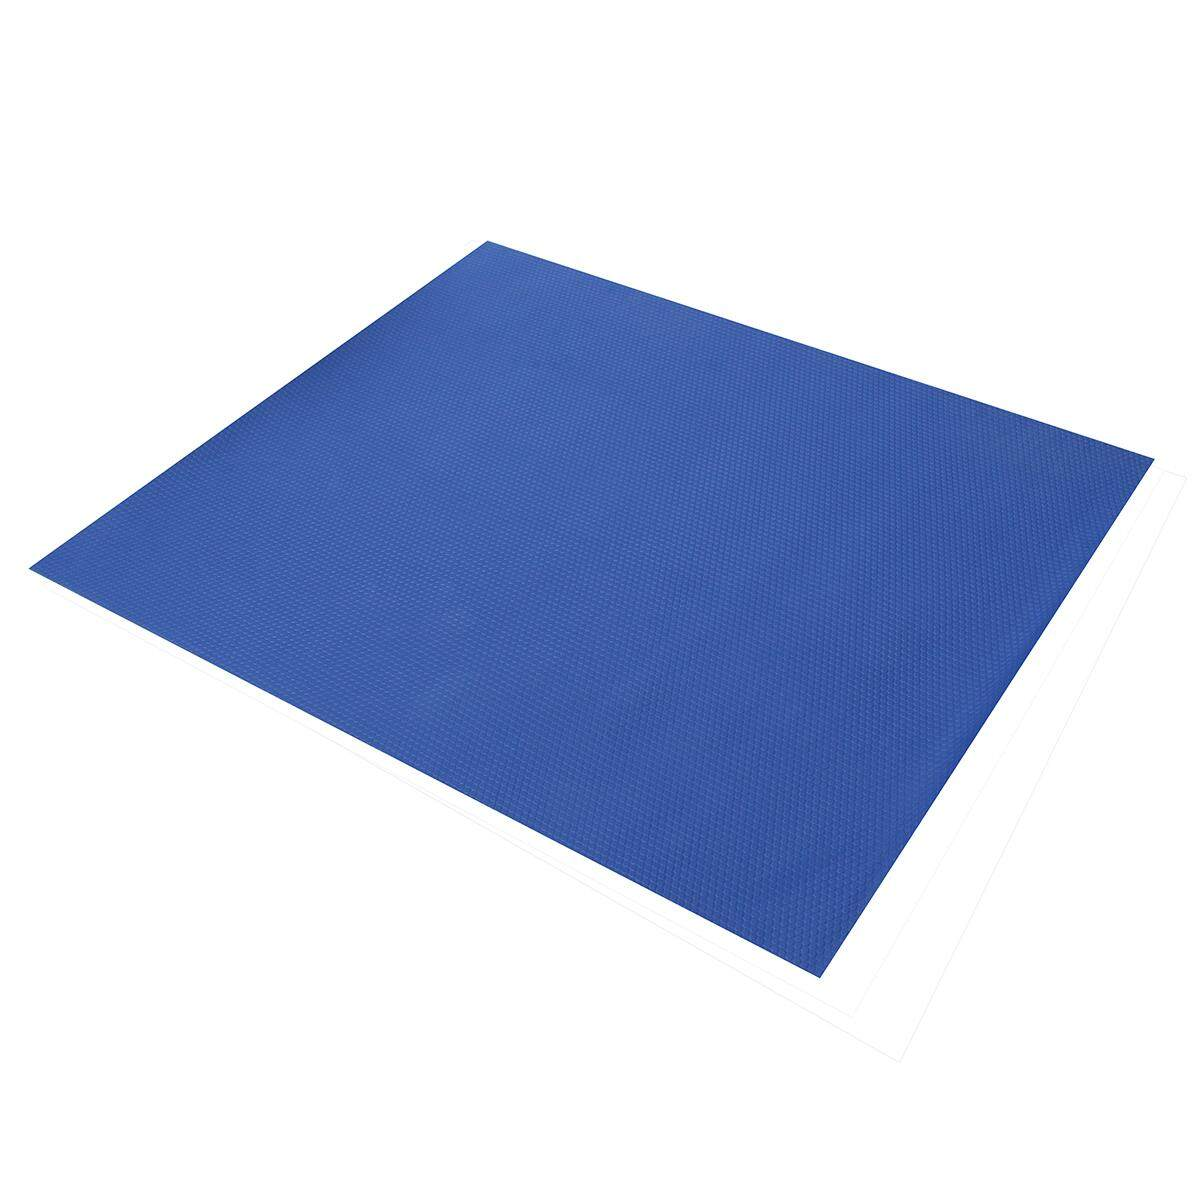 Gymanstics Floor for sale - Gymnastics Mats online nds, prices ... on soccer pads, cricket pads, hockey pads, title leg pads, paintball pads, football pads, boxing pads,